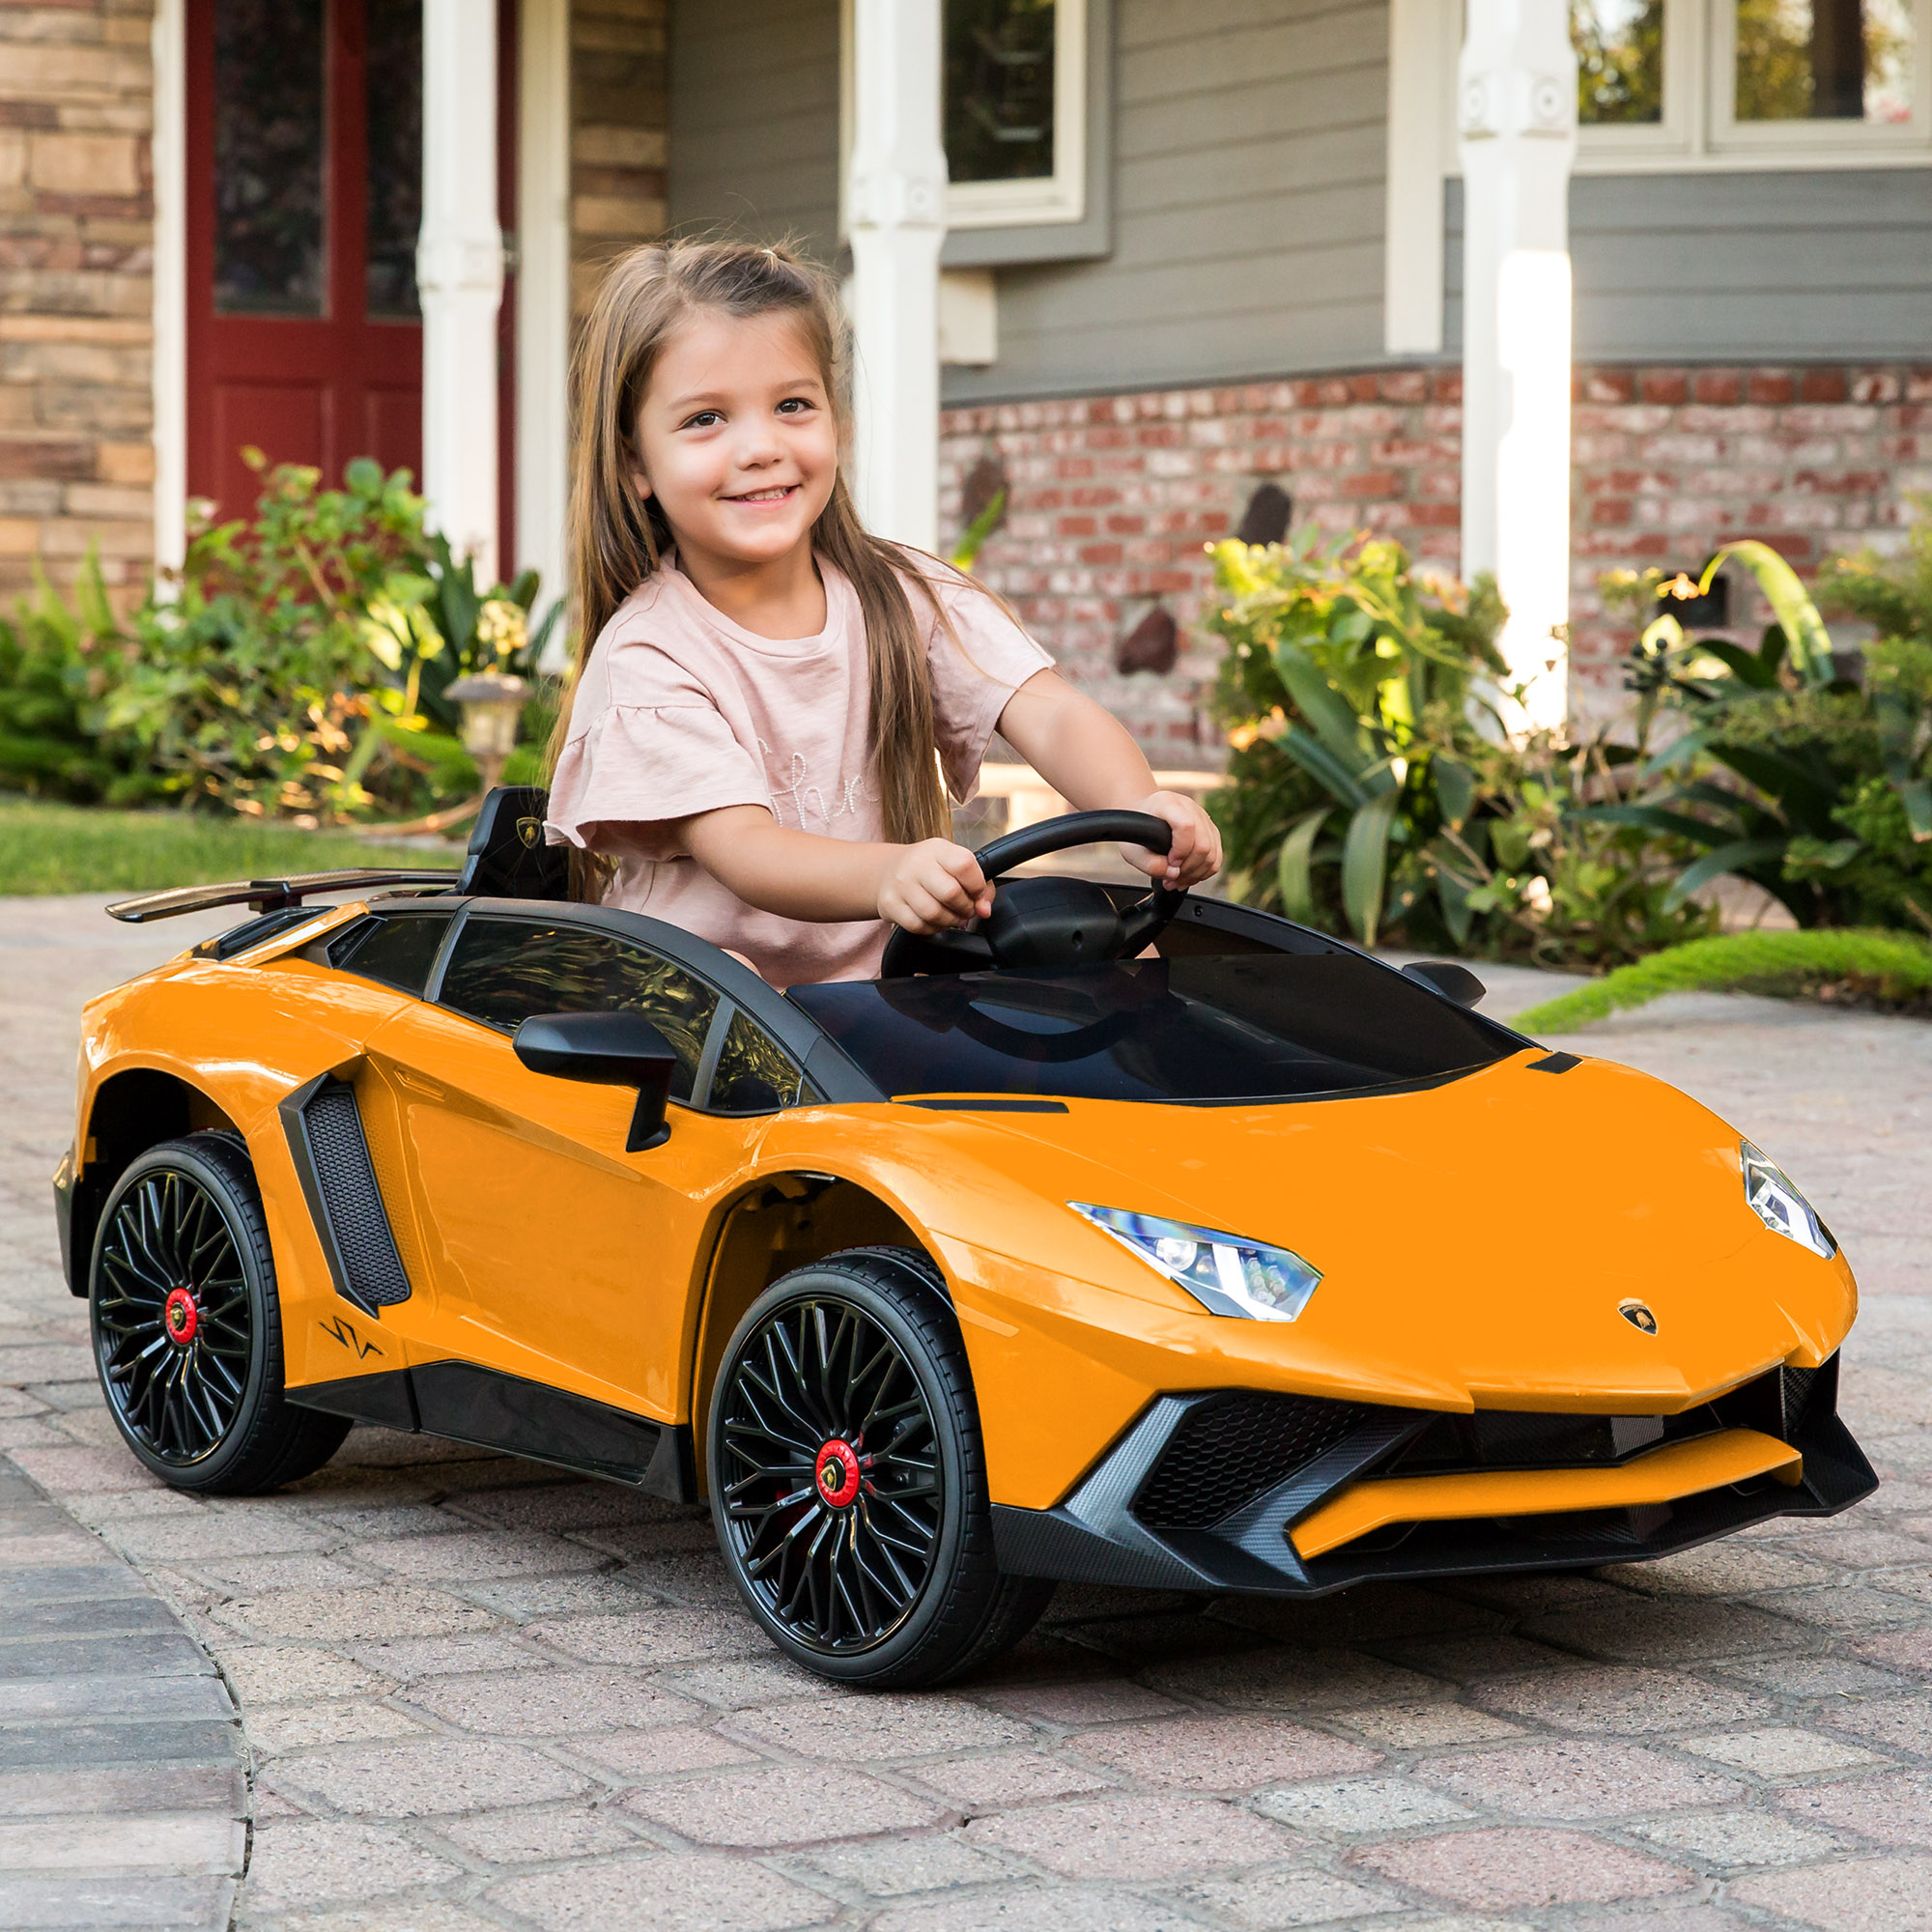 Best Choice Products Kids 12V Ride On Battery Powered Vehicle Lamborghini  Aventador SV Sports Car Toy w/ Parent Control, AUX Cable, 2 Speed Options,